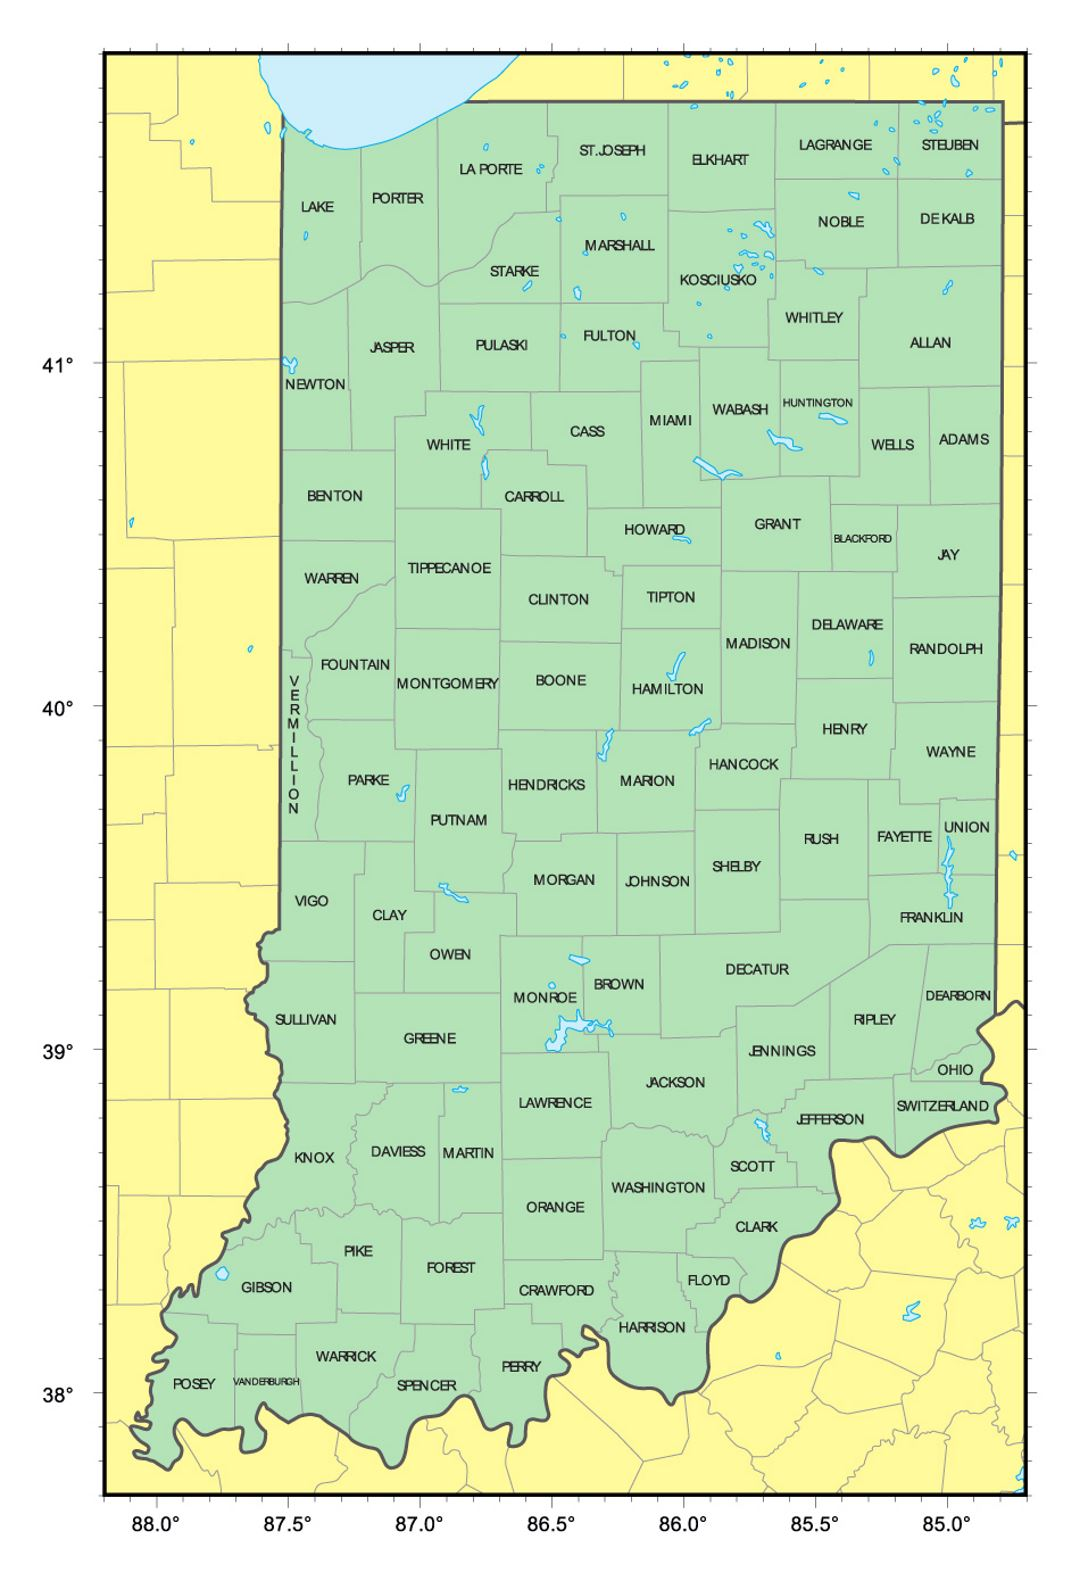 Detailed administrative map of Indiana state | Indiana state ... on transportation in indiana, butterflies in indiana, star in indiana, animals in indiana, weather in indiana, zip code map in indiana, usa map in miami, usa map in new jersey, dinosaurs in indiana, texas in indiana, home in indiana,